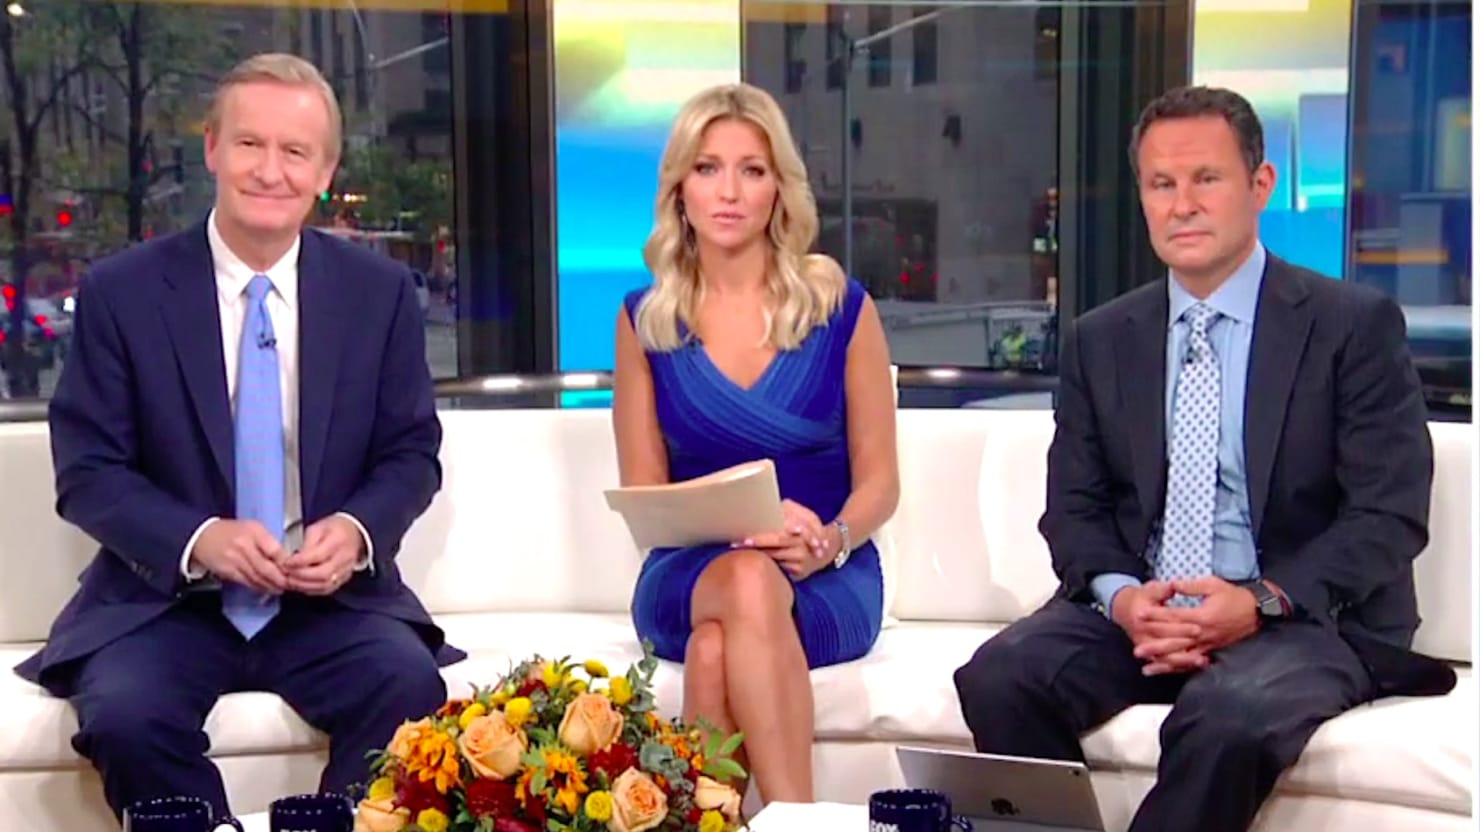 Max Miller: I Watched Fox and Friends, Now I Need A Wall